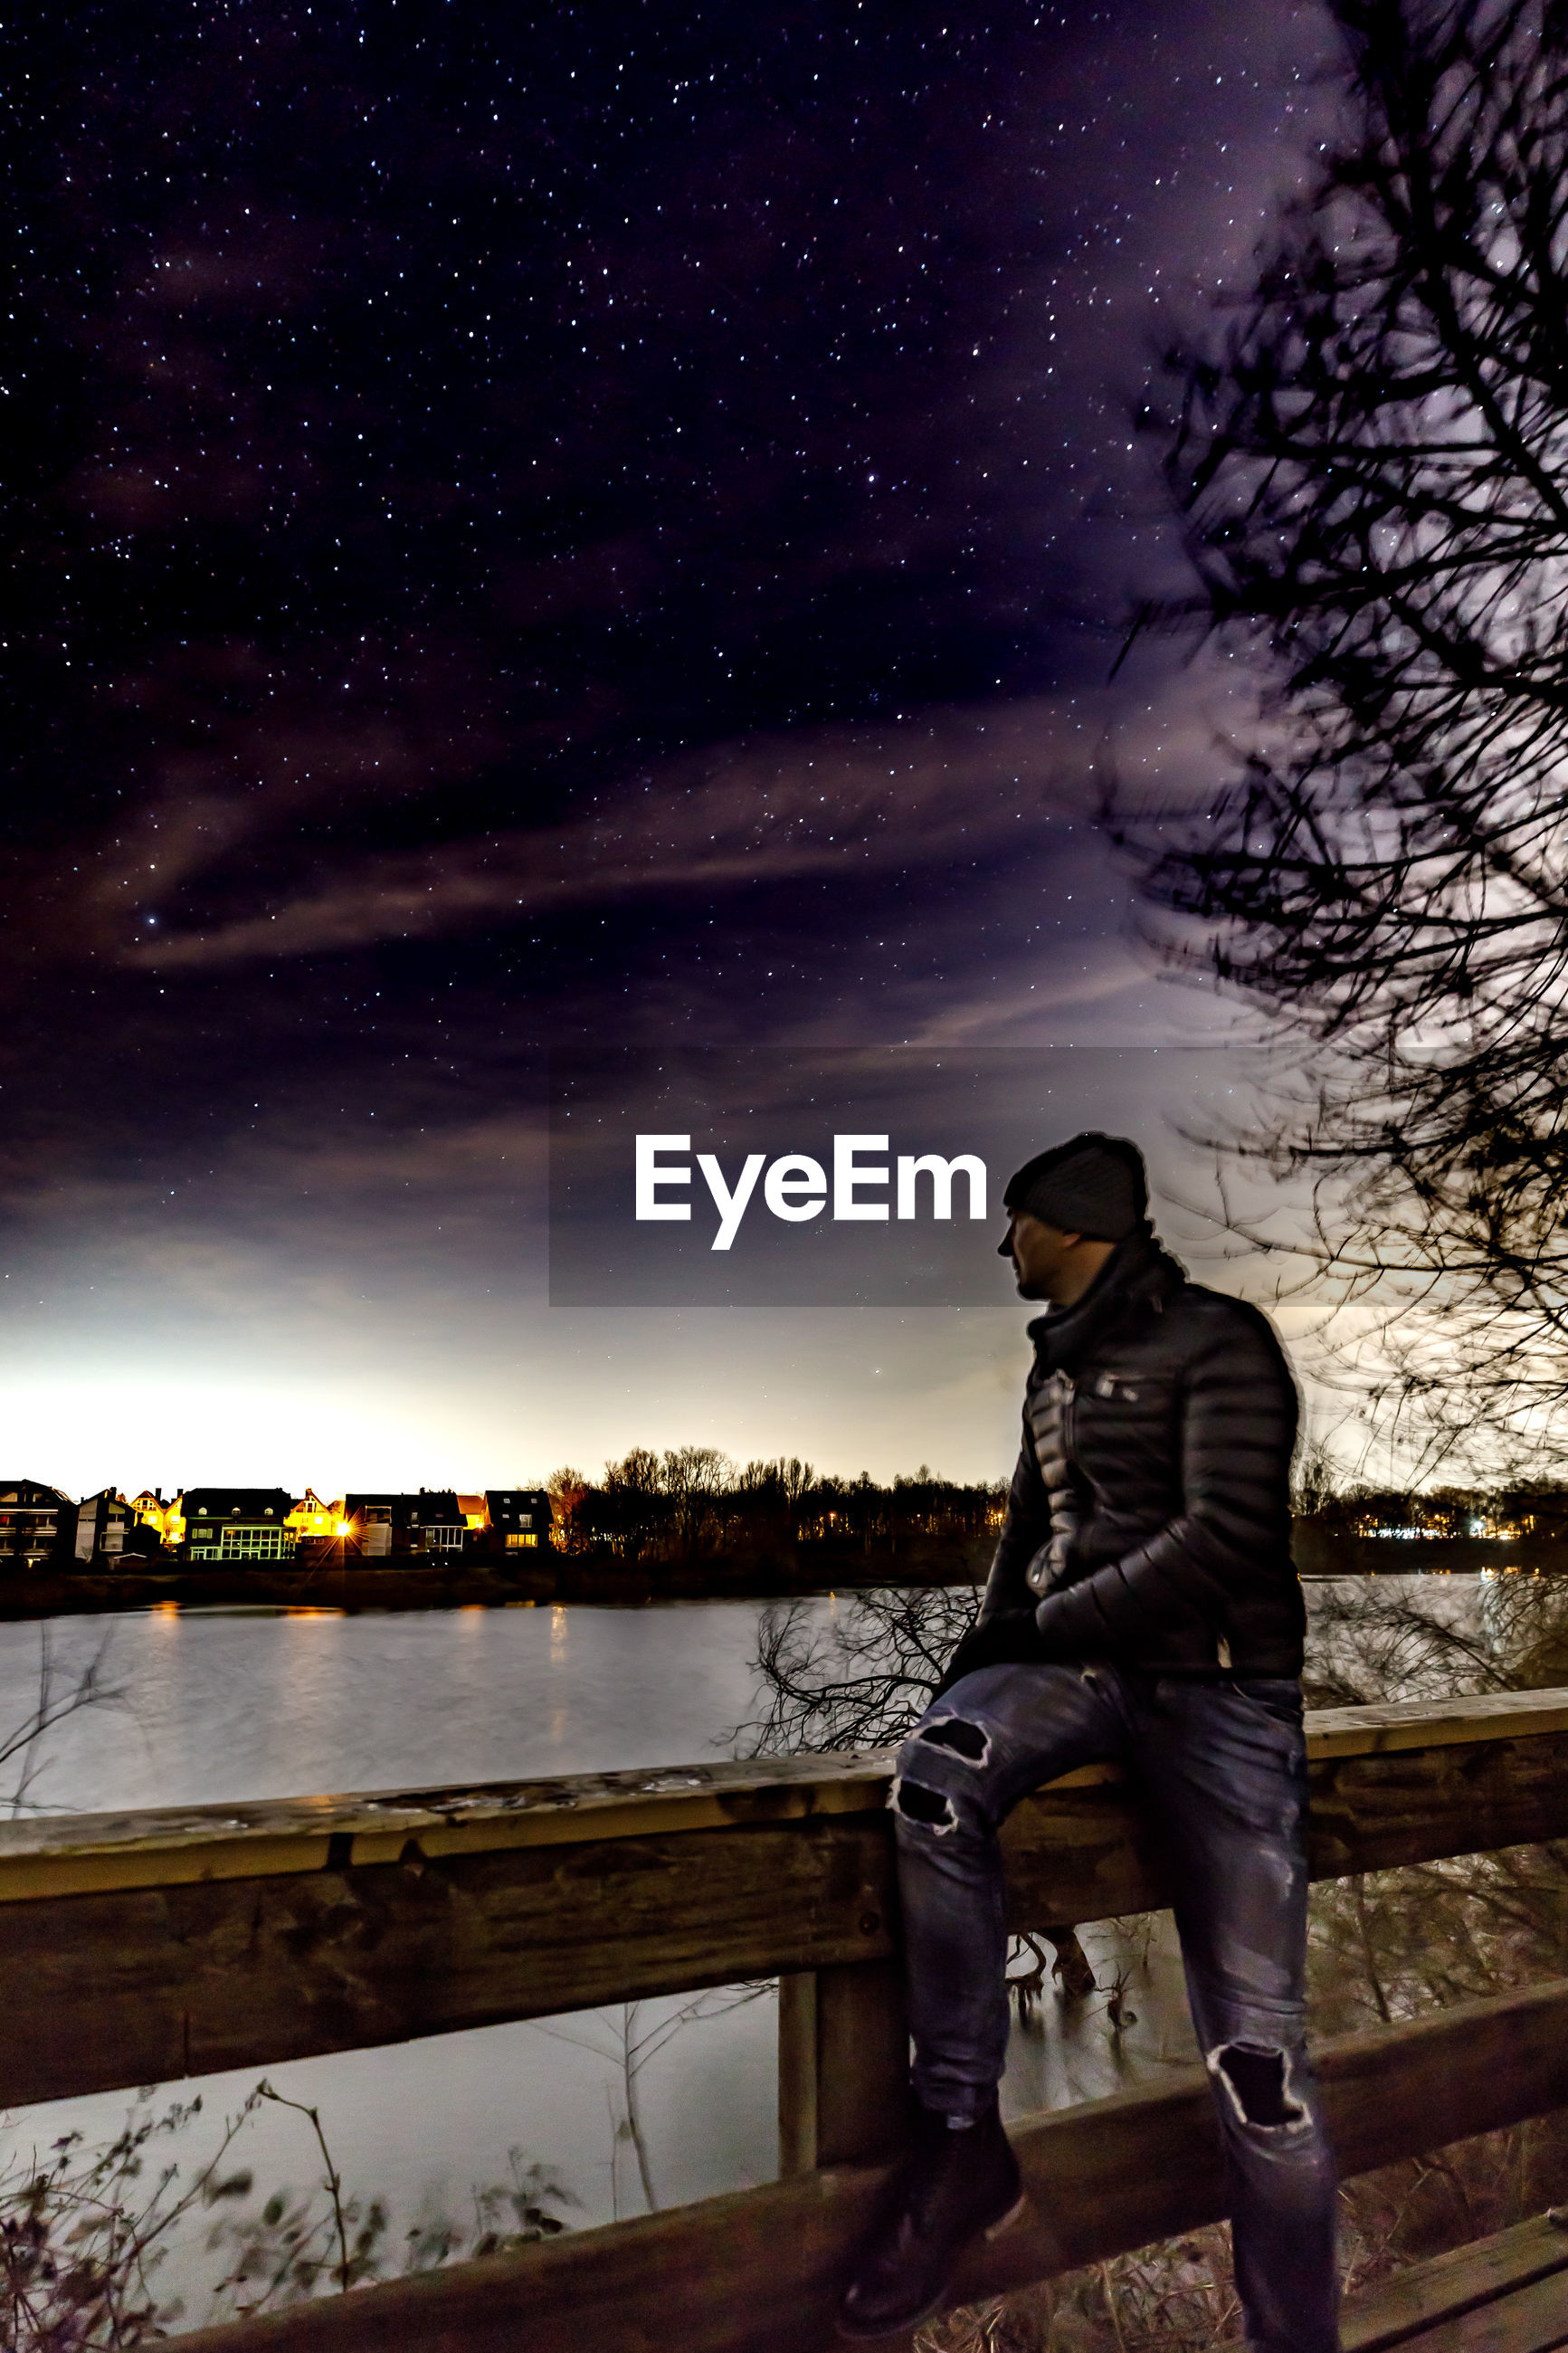 Man sitting on railing by lake against star field